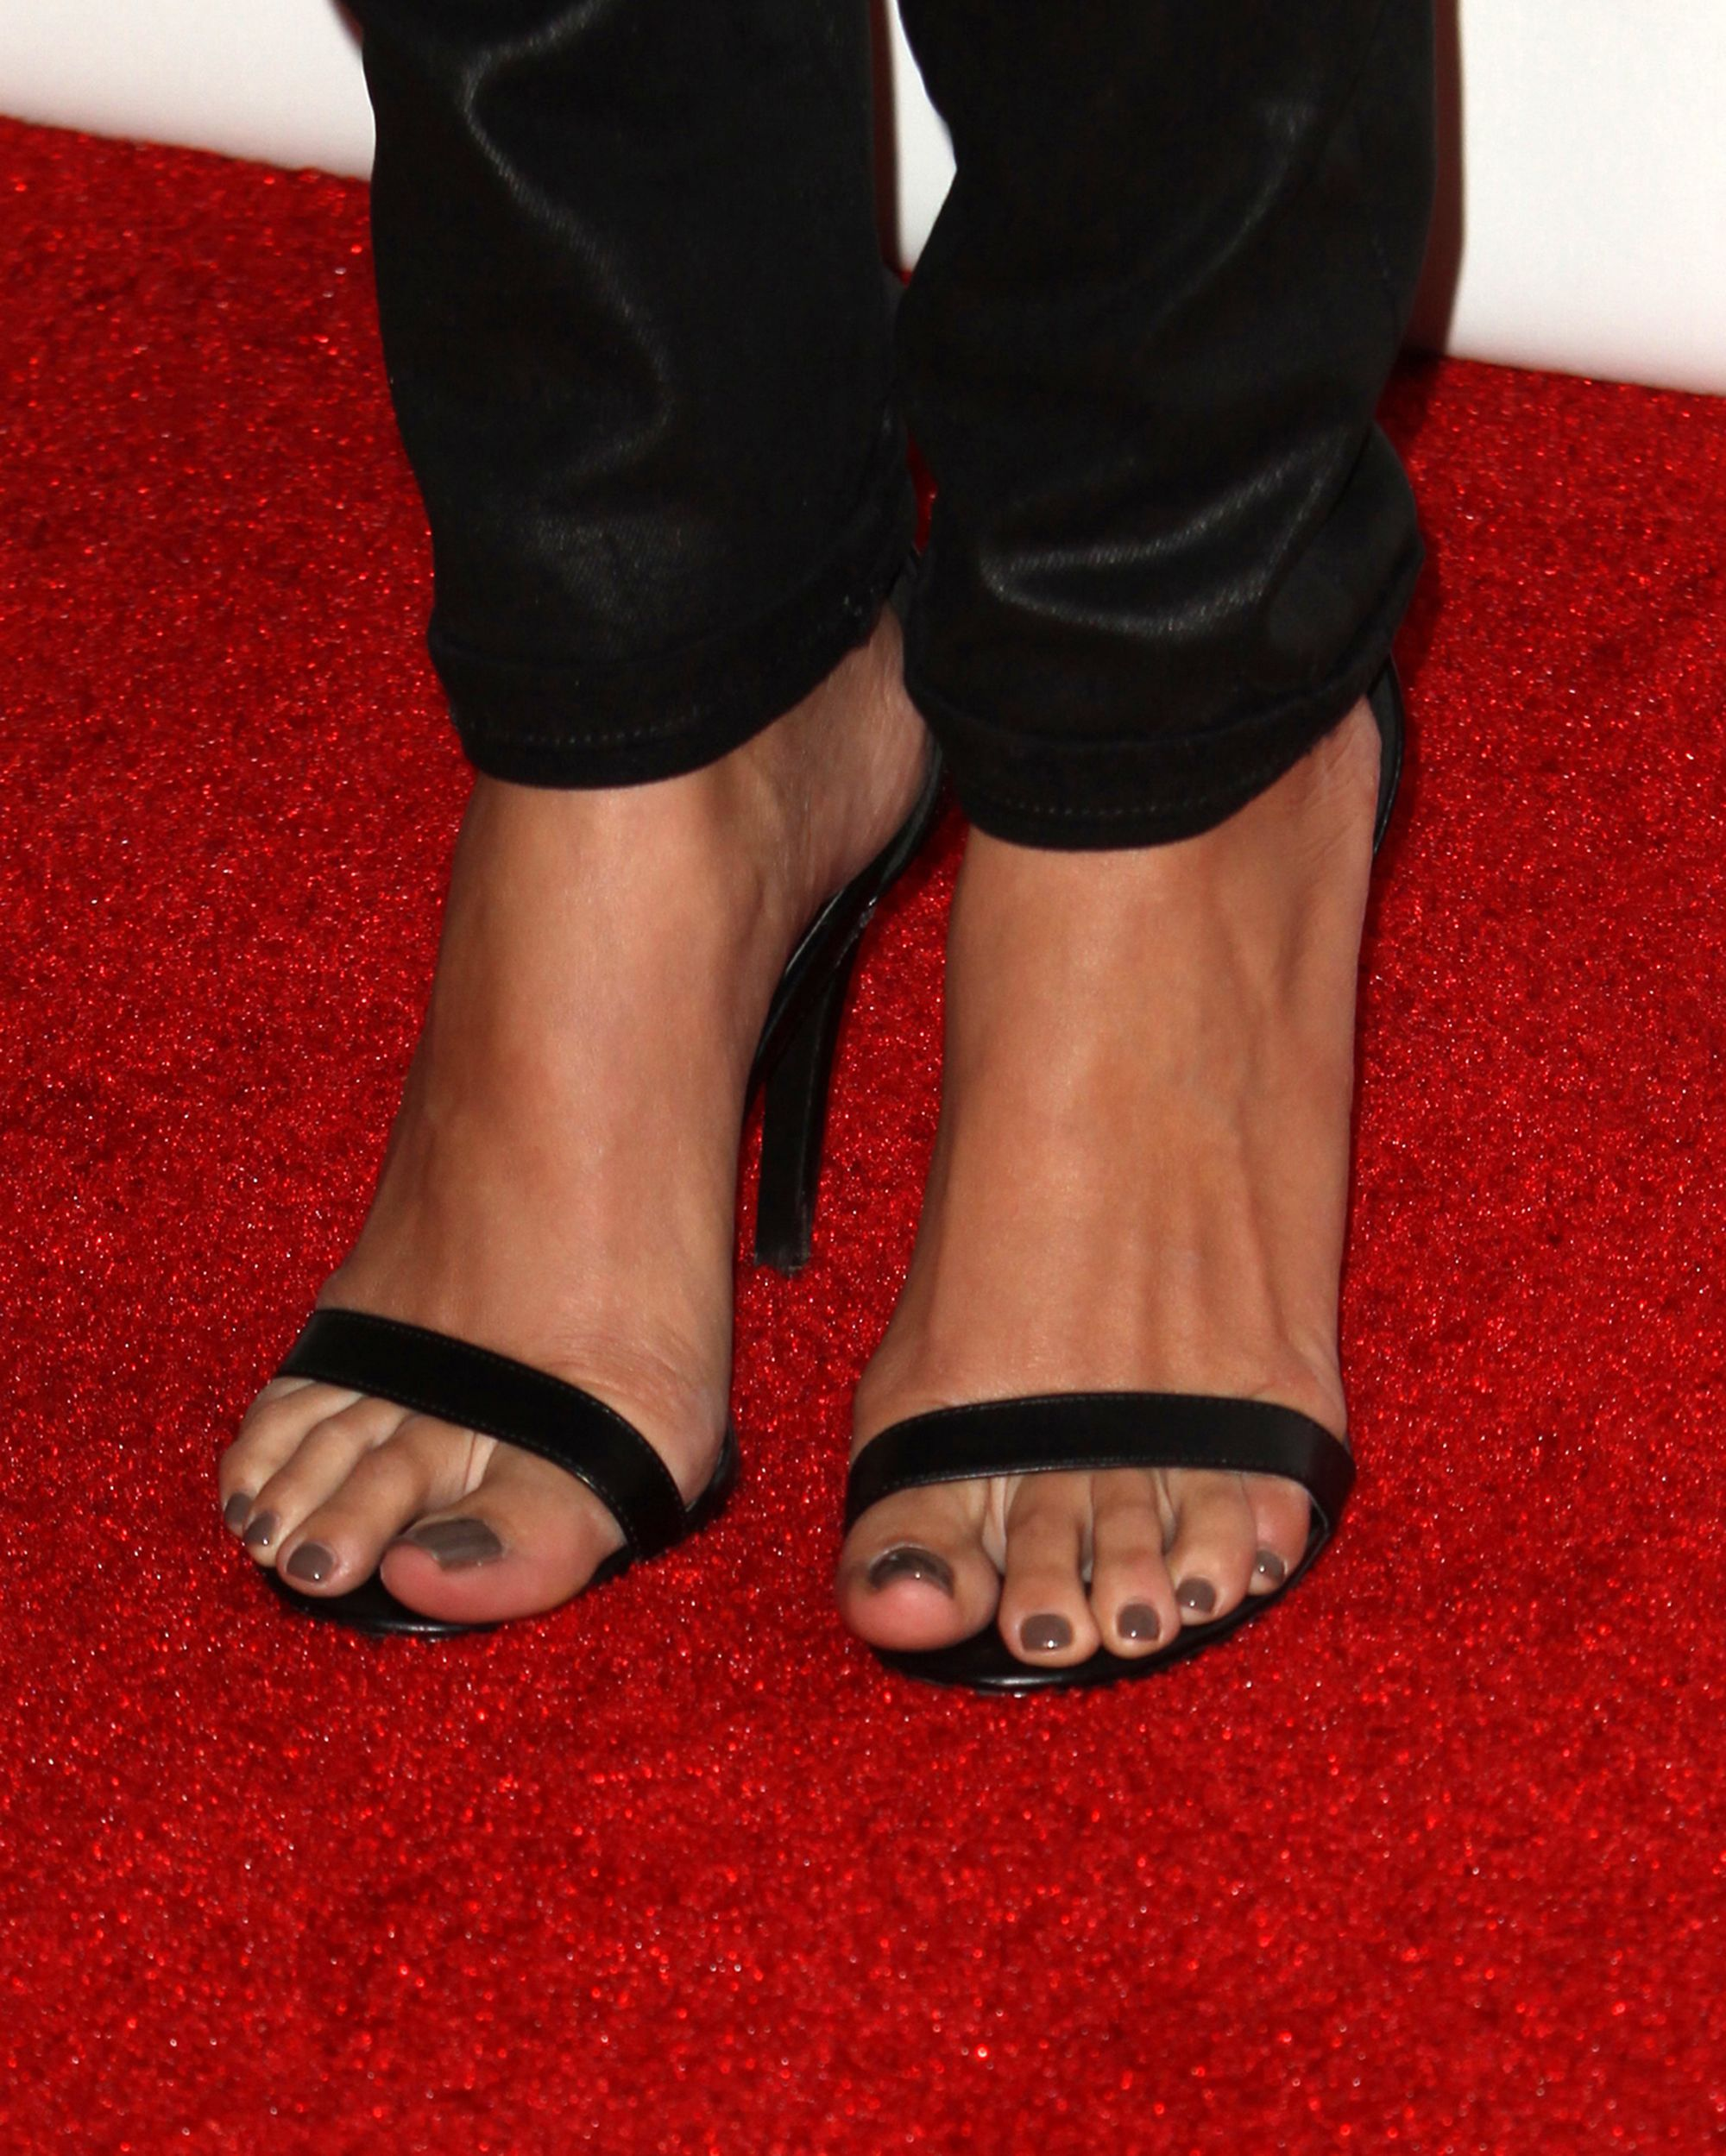 Feet Christina Ricci nude photos 2019